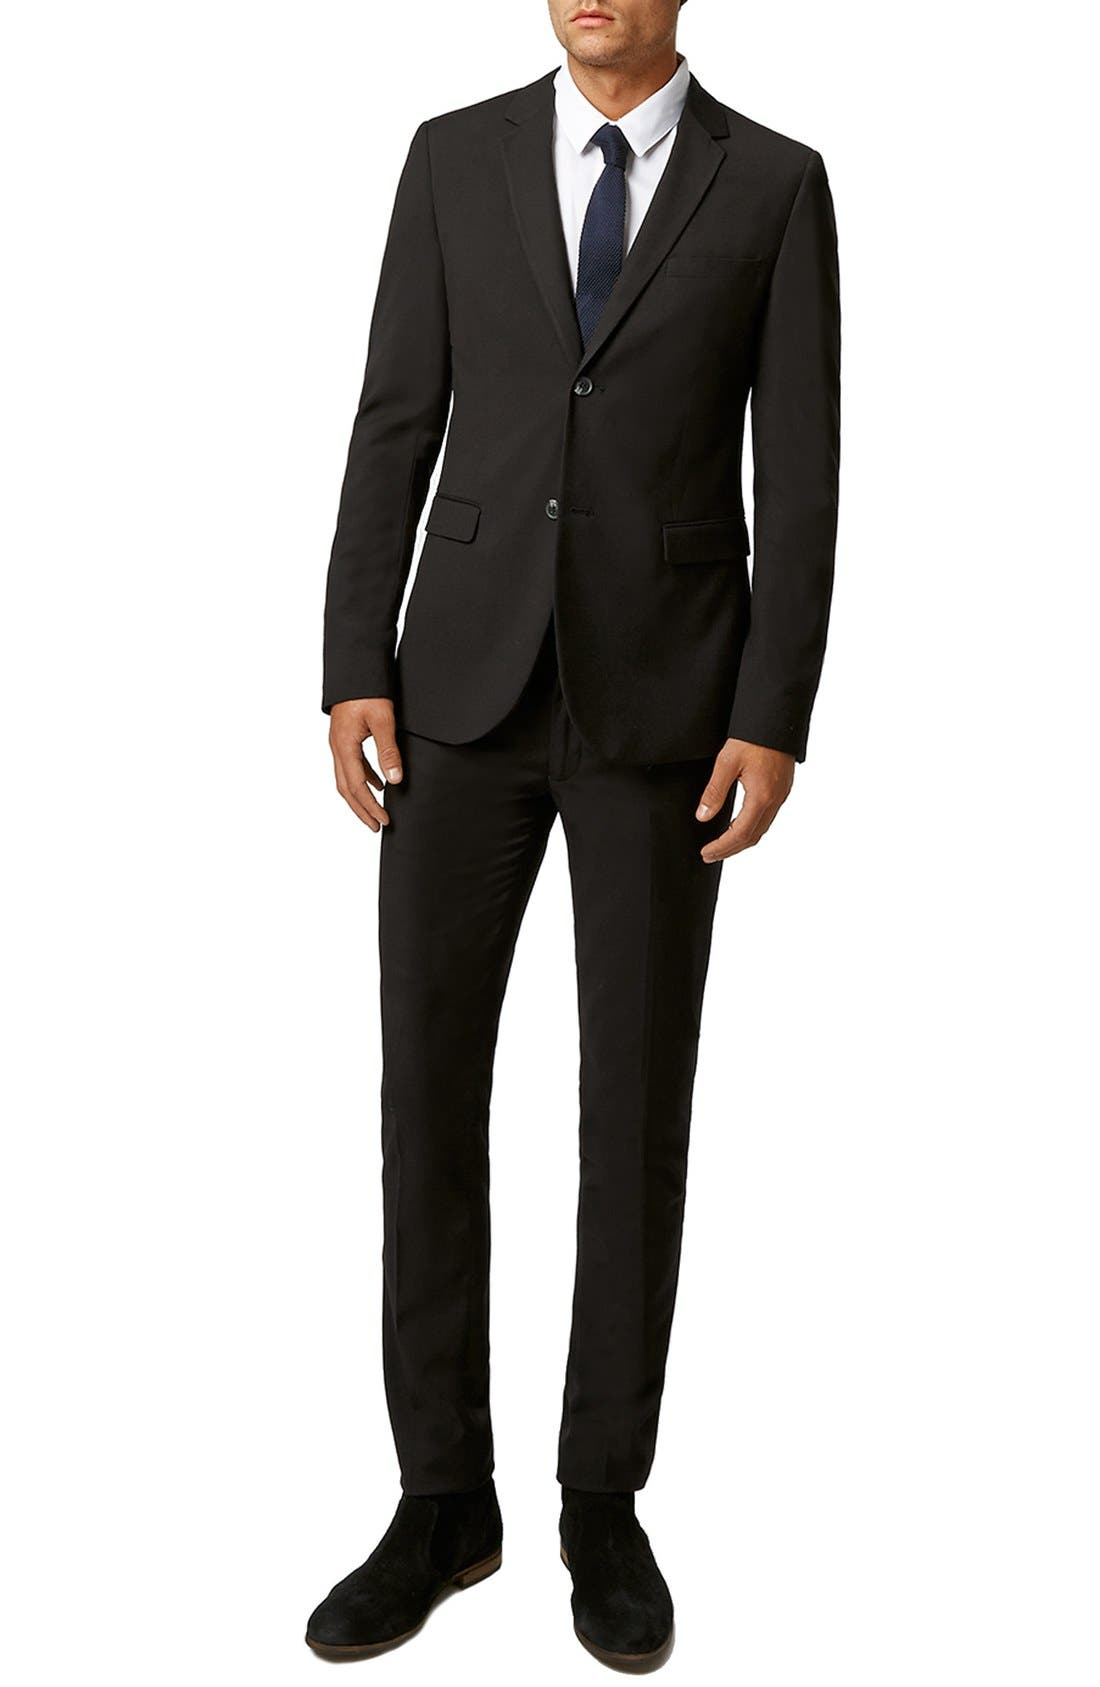 Ultra Skinny Black Suit Jacket,                             Alternate thumbnail 8, color,                             BLACK